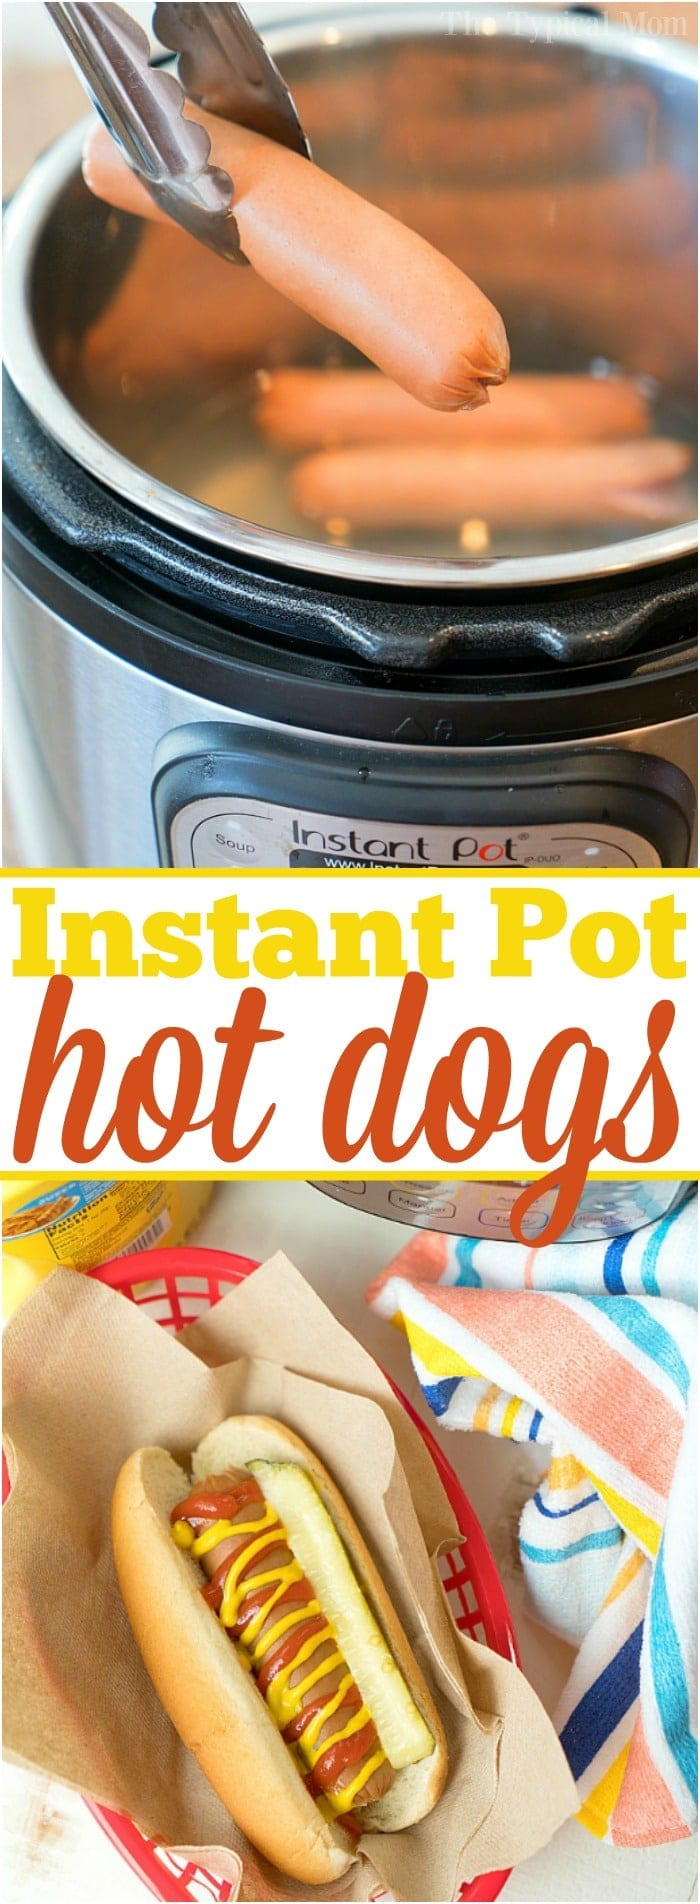 This is how easy it is to make Instant Pot hot dogs. Cheap and easy dinner you can make during the summertime, for a potluck, picnic or year round really. This favorite food for kids only takes a few minutes to become plump and juicy, ready for all the fixings. Use cased or traditional hot dogs and follow these times. #instantpot #hotdogs #hotdog #easy #howtocook #sausage #dinner